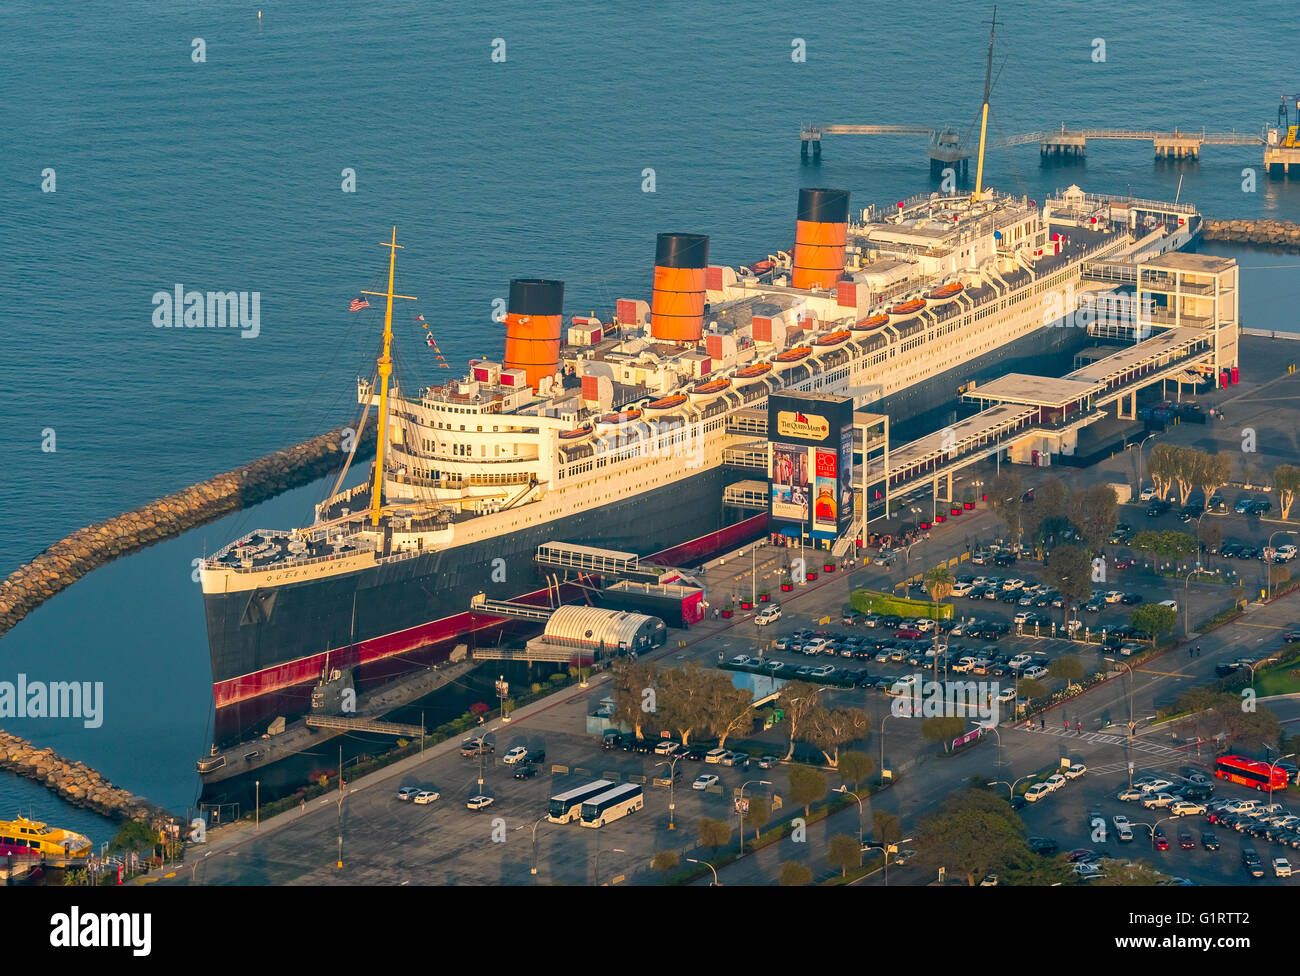 RMS Queen Mary Ocean Liner Hotel, Queen Mary Hotel in Long Beach Harbor, Long Beach, Los Angeles County, California, - Stock Image